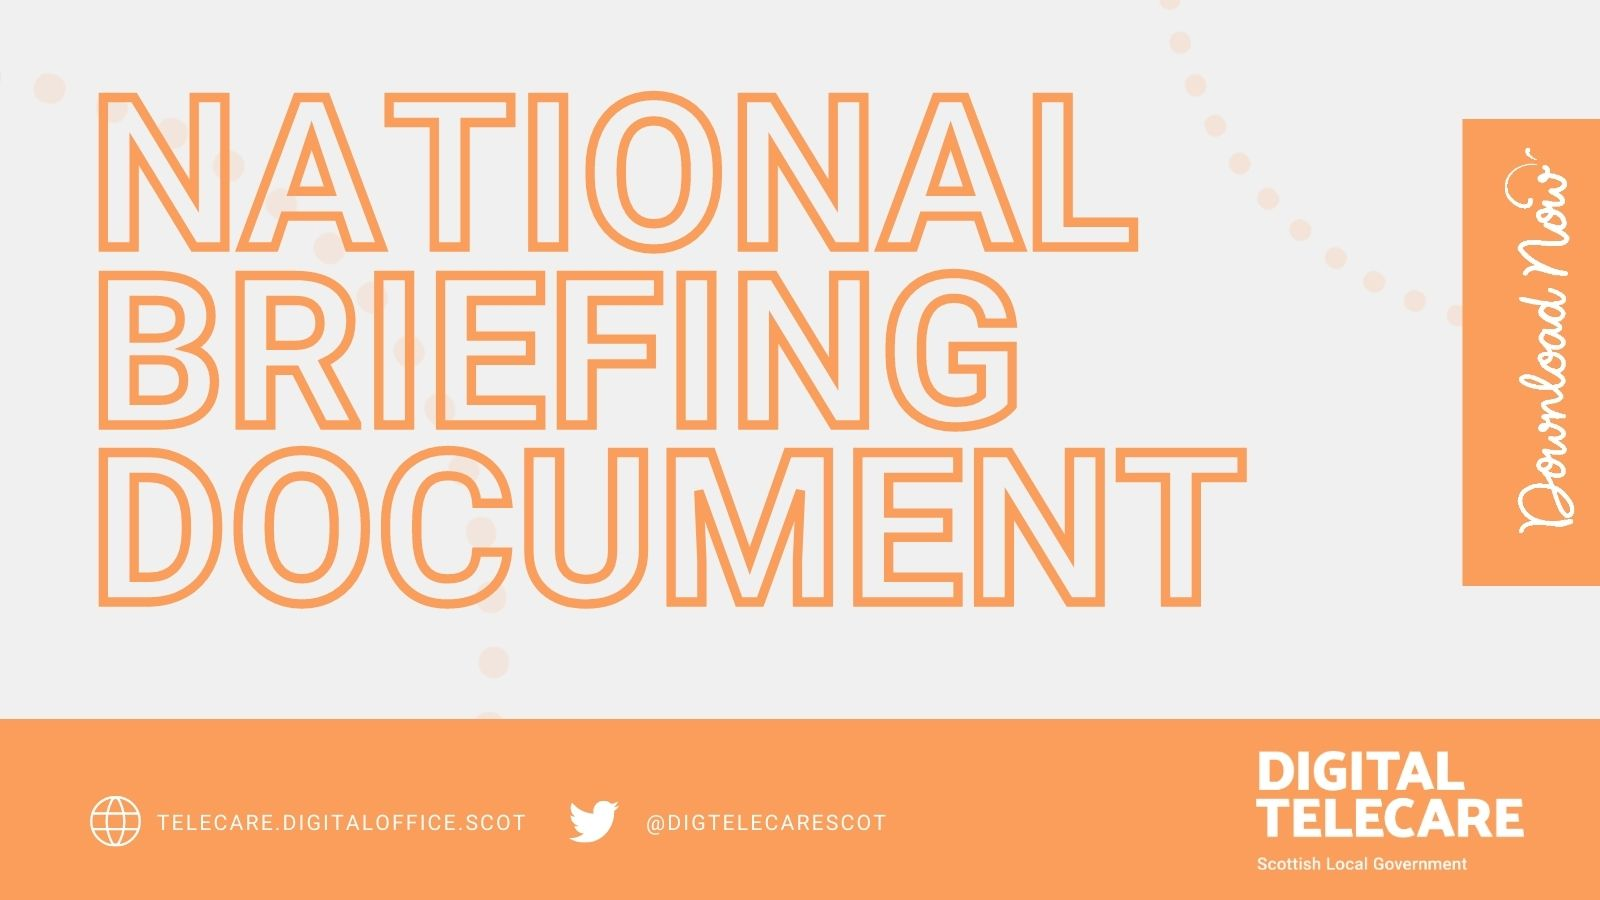 LAUNCH OF THE NATIONAL BRIEFING DOCUMENT